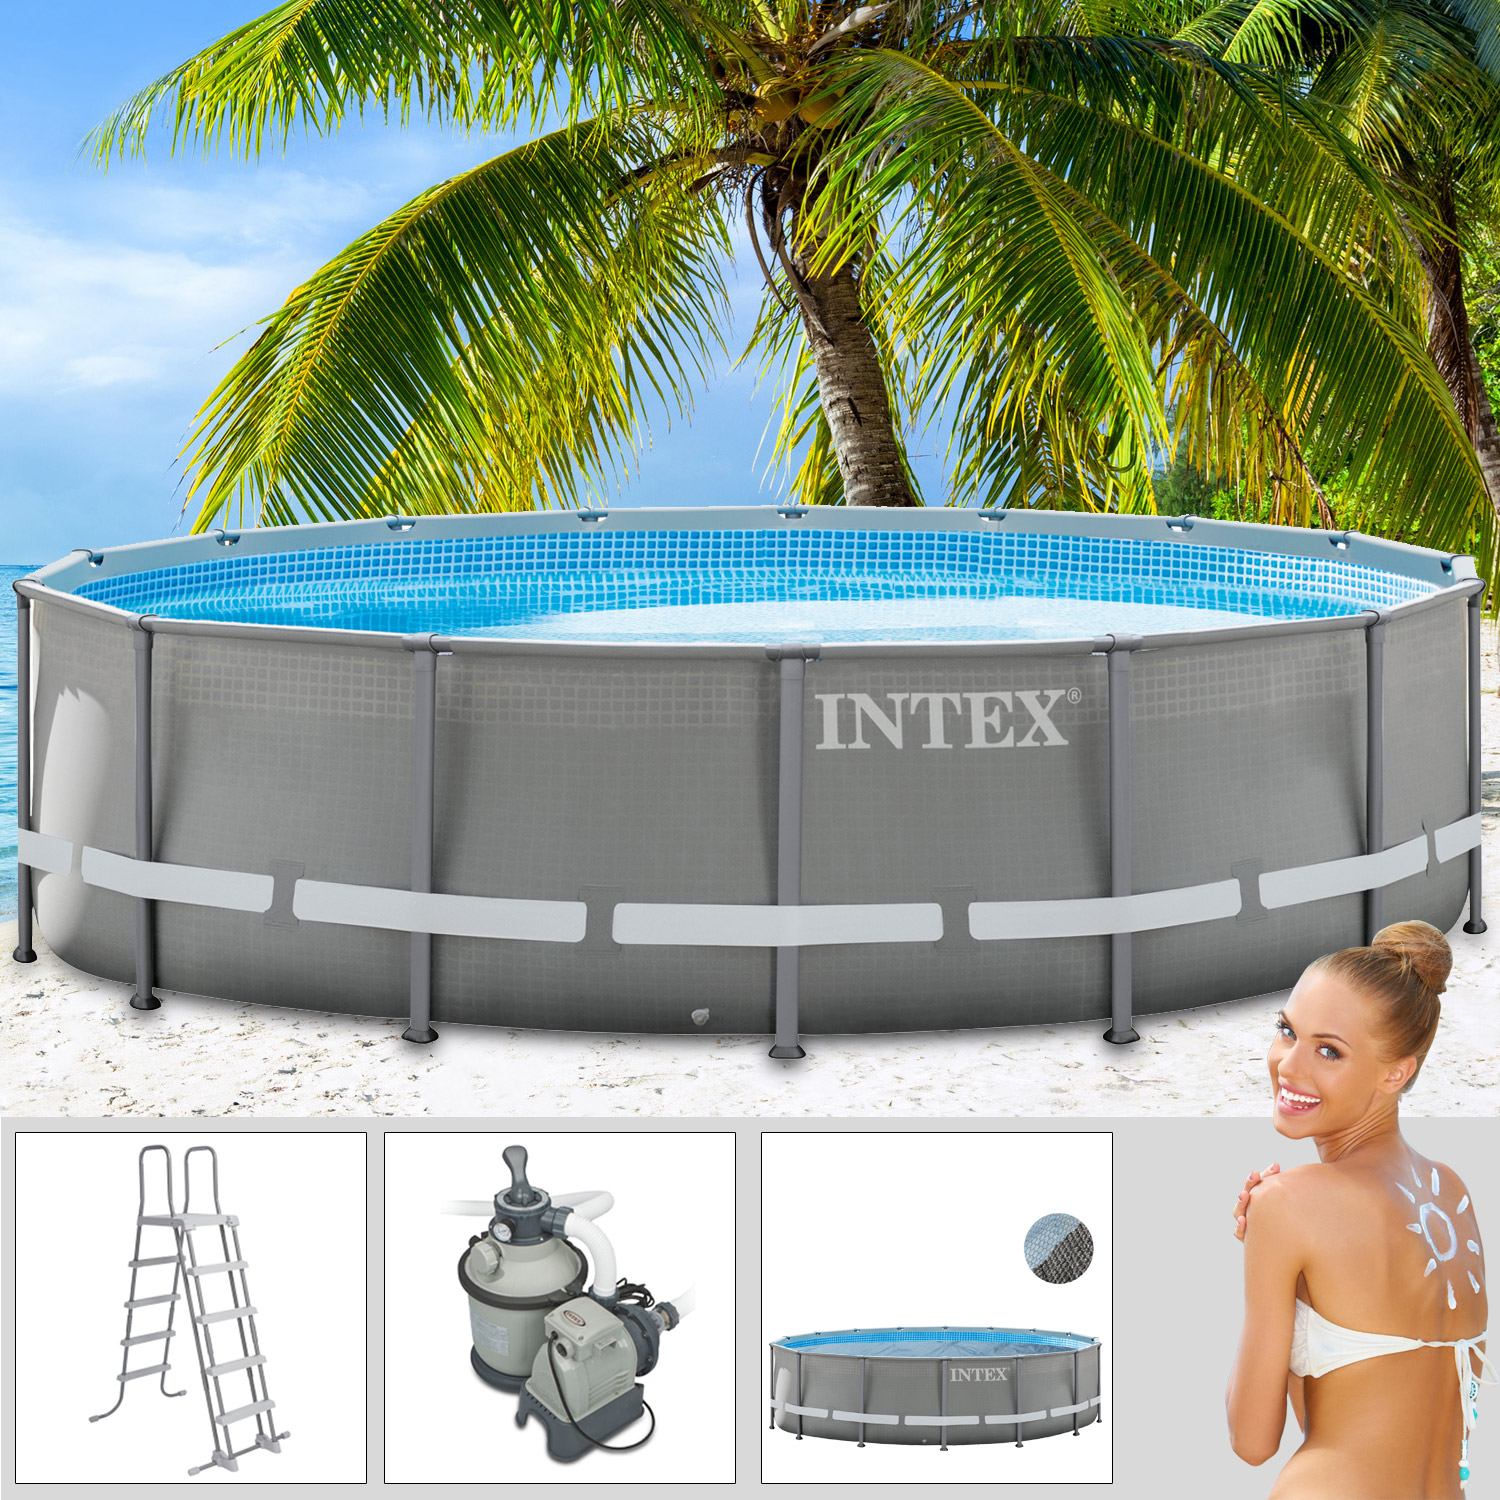 Intex 549x132 cm swimming pool frame set mit sandfilter for Swimmingpool angebote